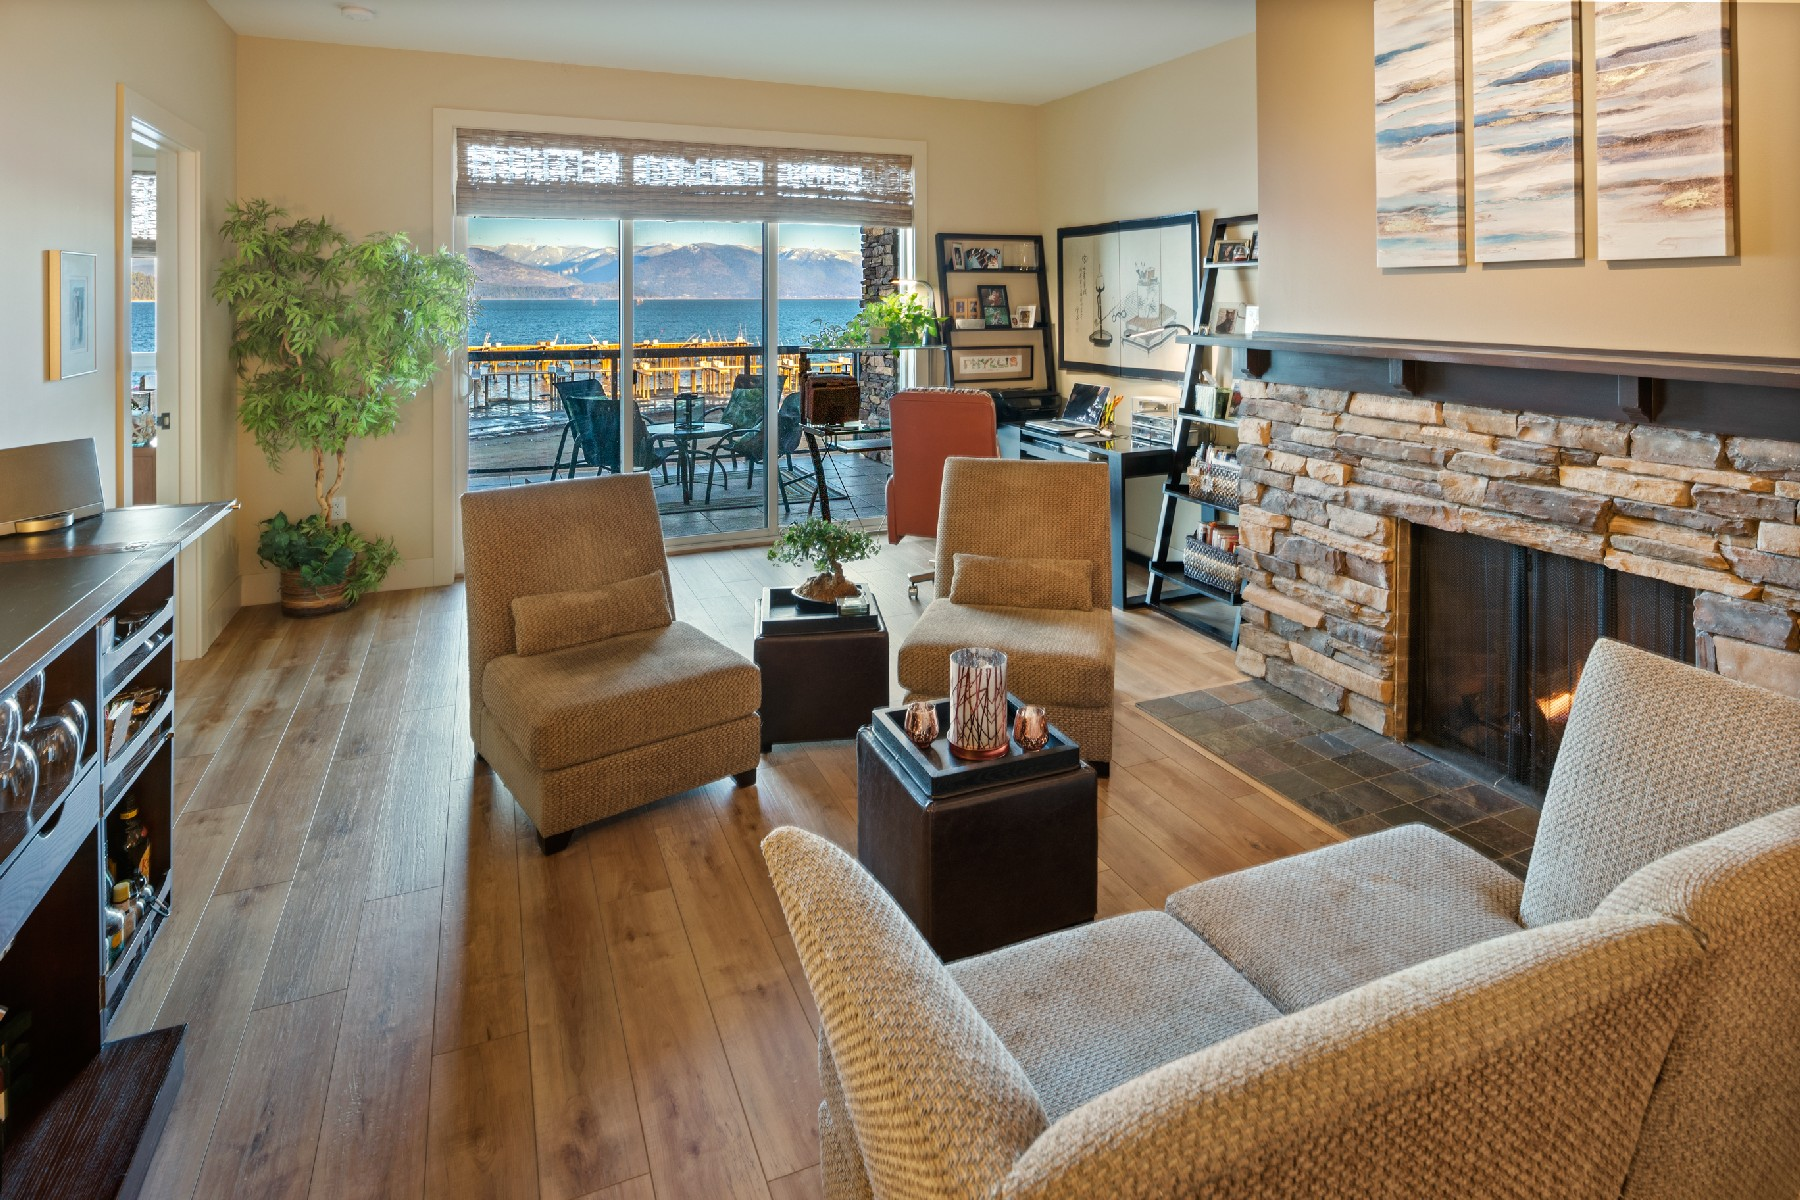 Single Family Homes for Sale at Seasons At Sandpoint 412 Sandpoint Avenue-Unit 234 Sandpoint, Idaho 83864 United States